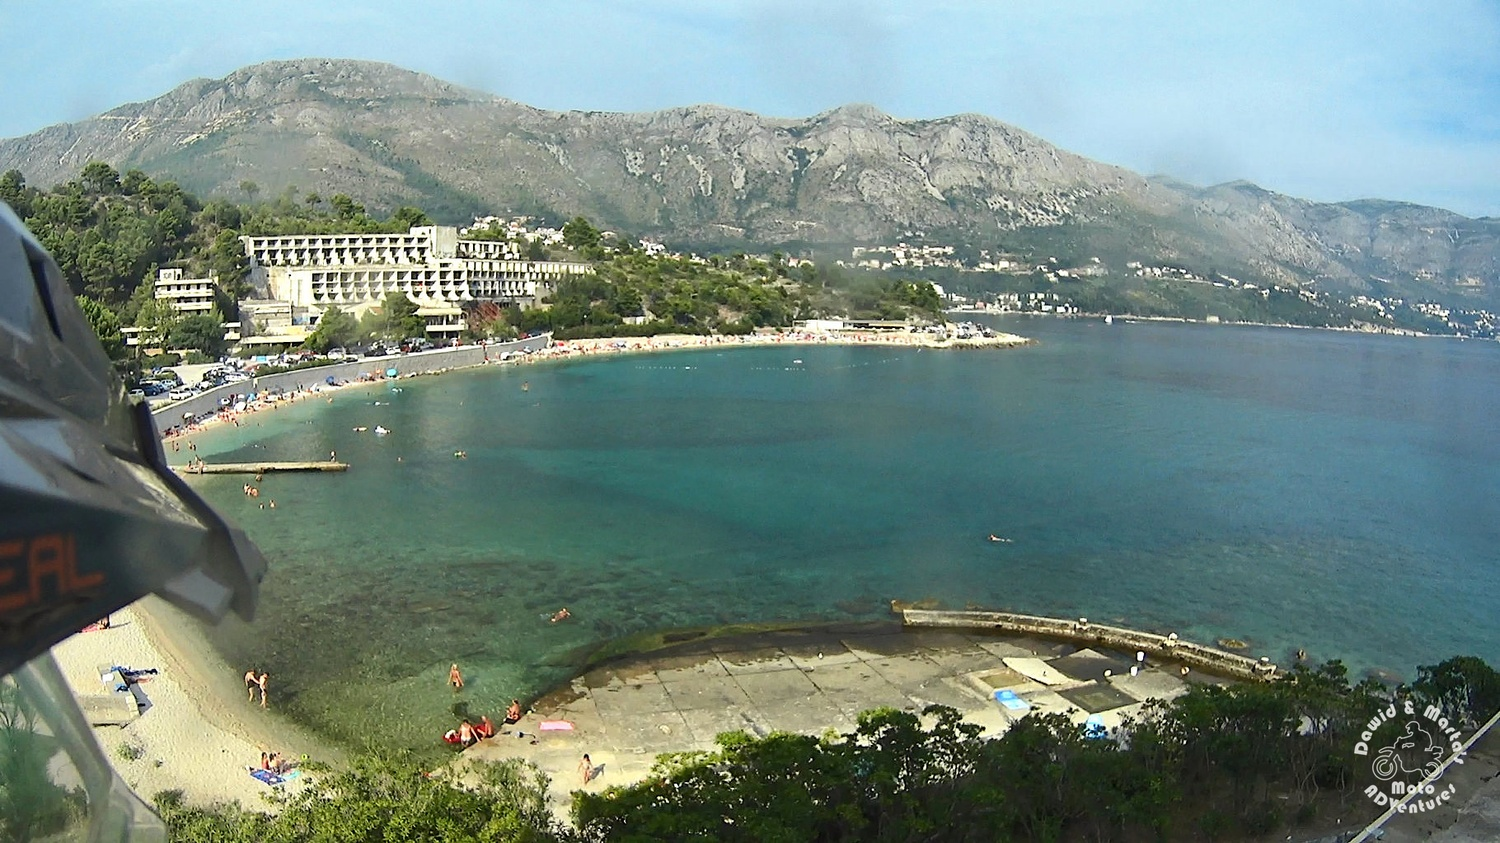 Kupari beach seen from the Pelegrin Hotel, Hotel Goričina II in the background